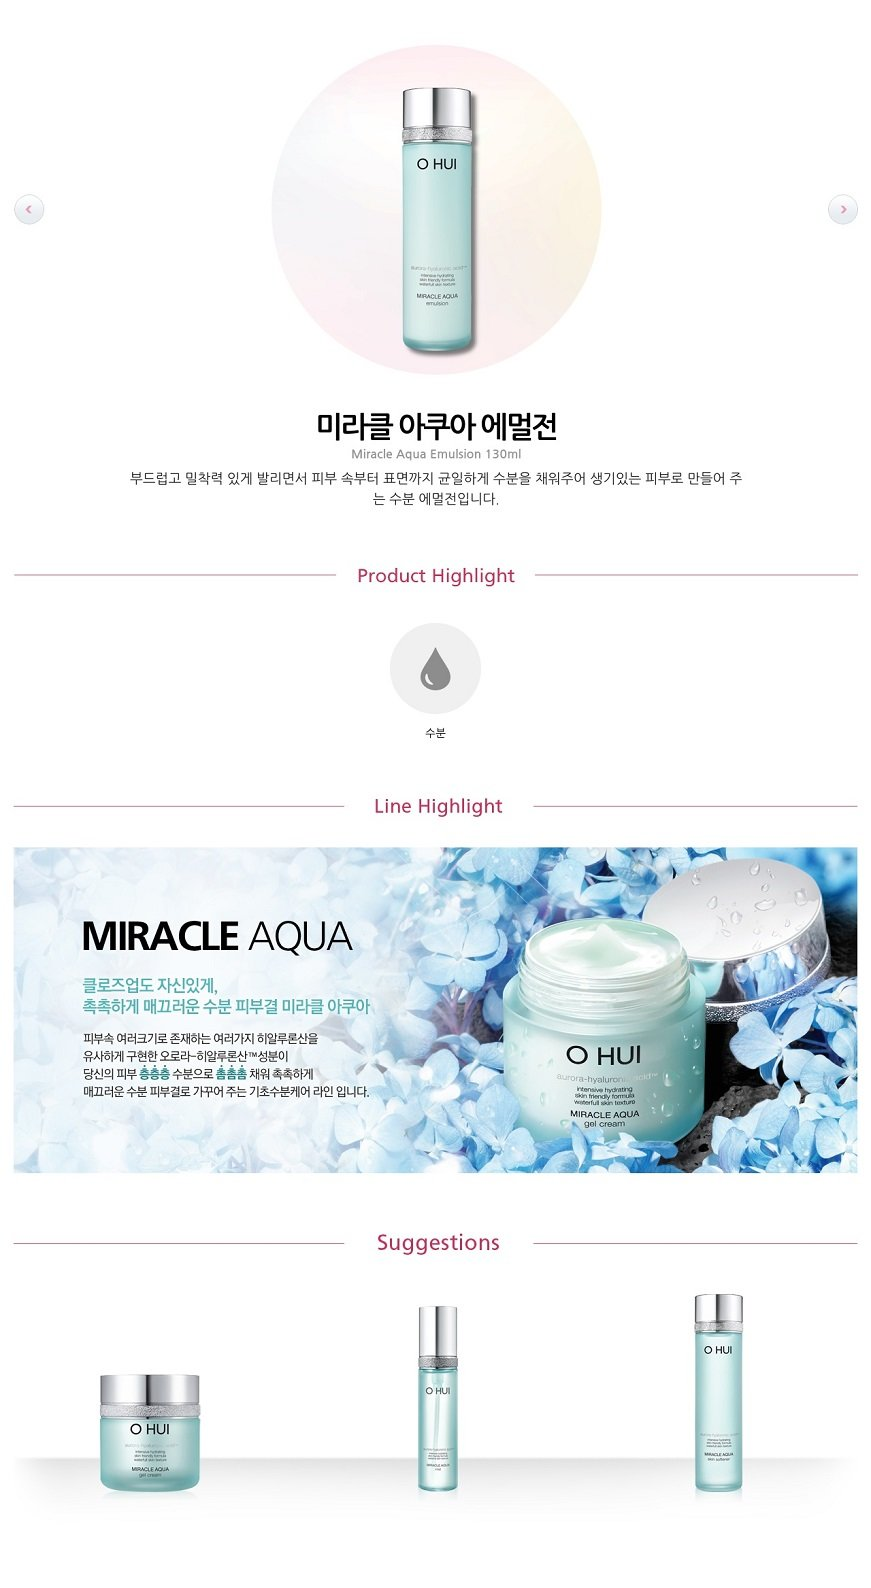 OHUI Miracle Aqua Emulsion 130ml malaysia singapore indonesia